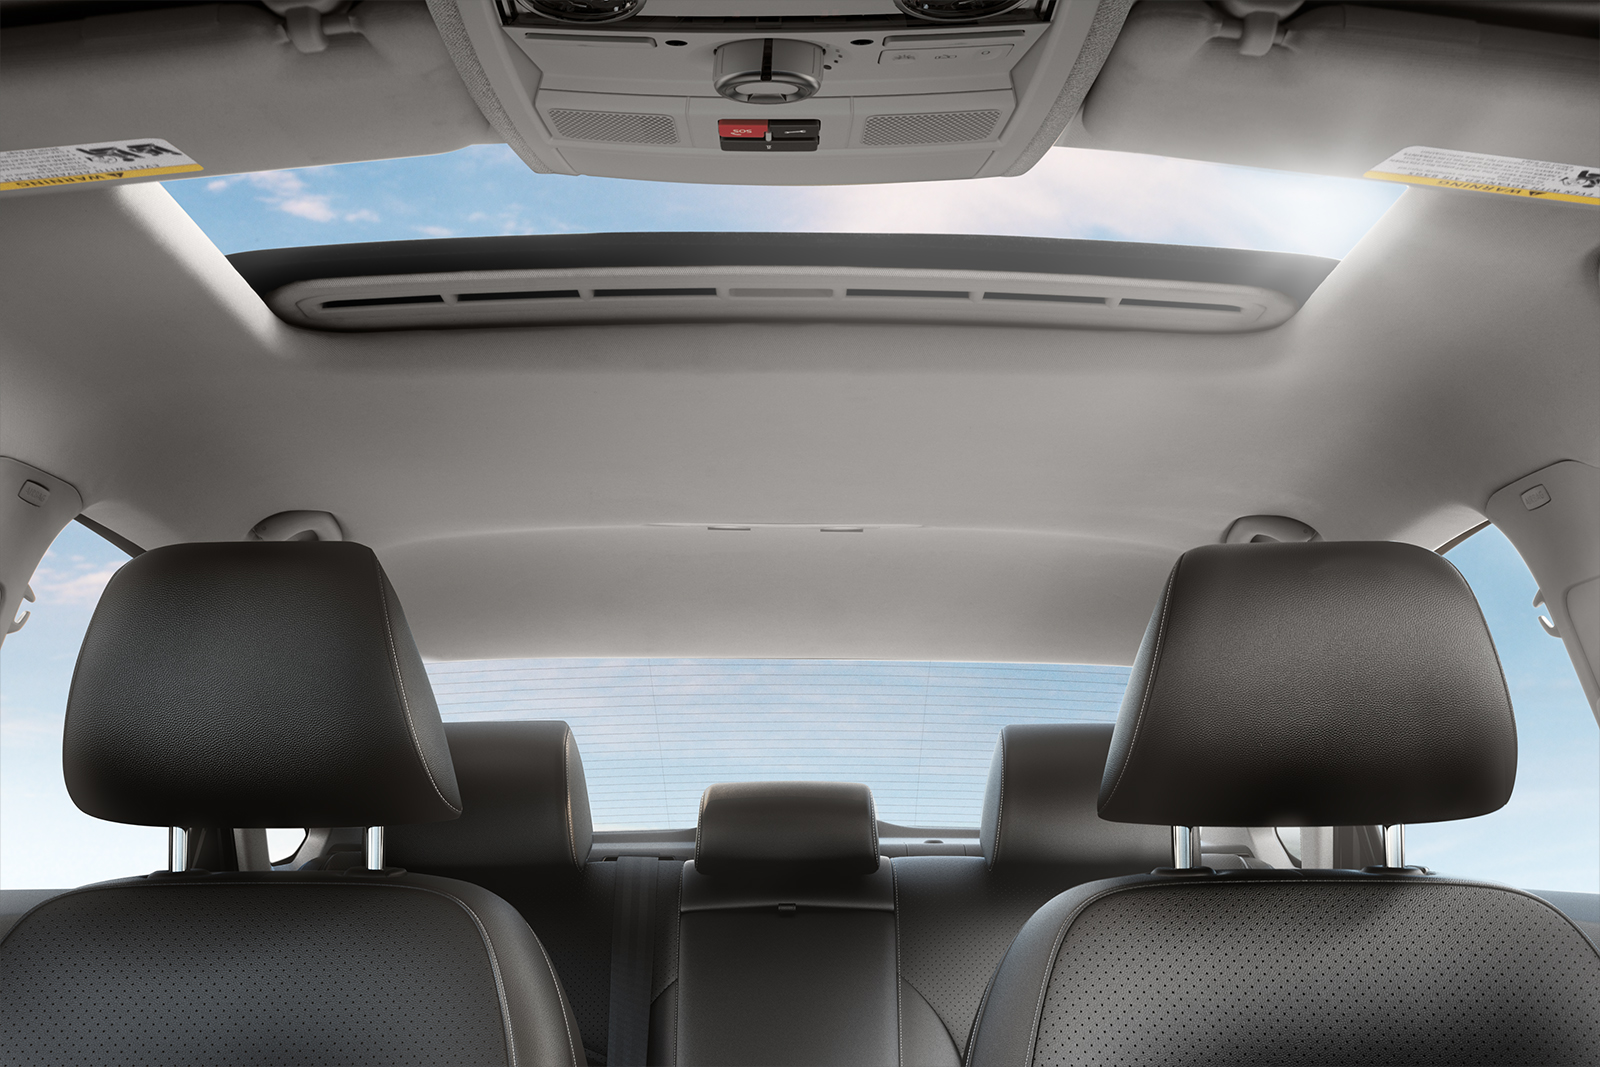 2020 Passat Sunroof